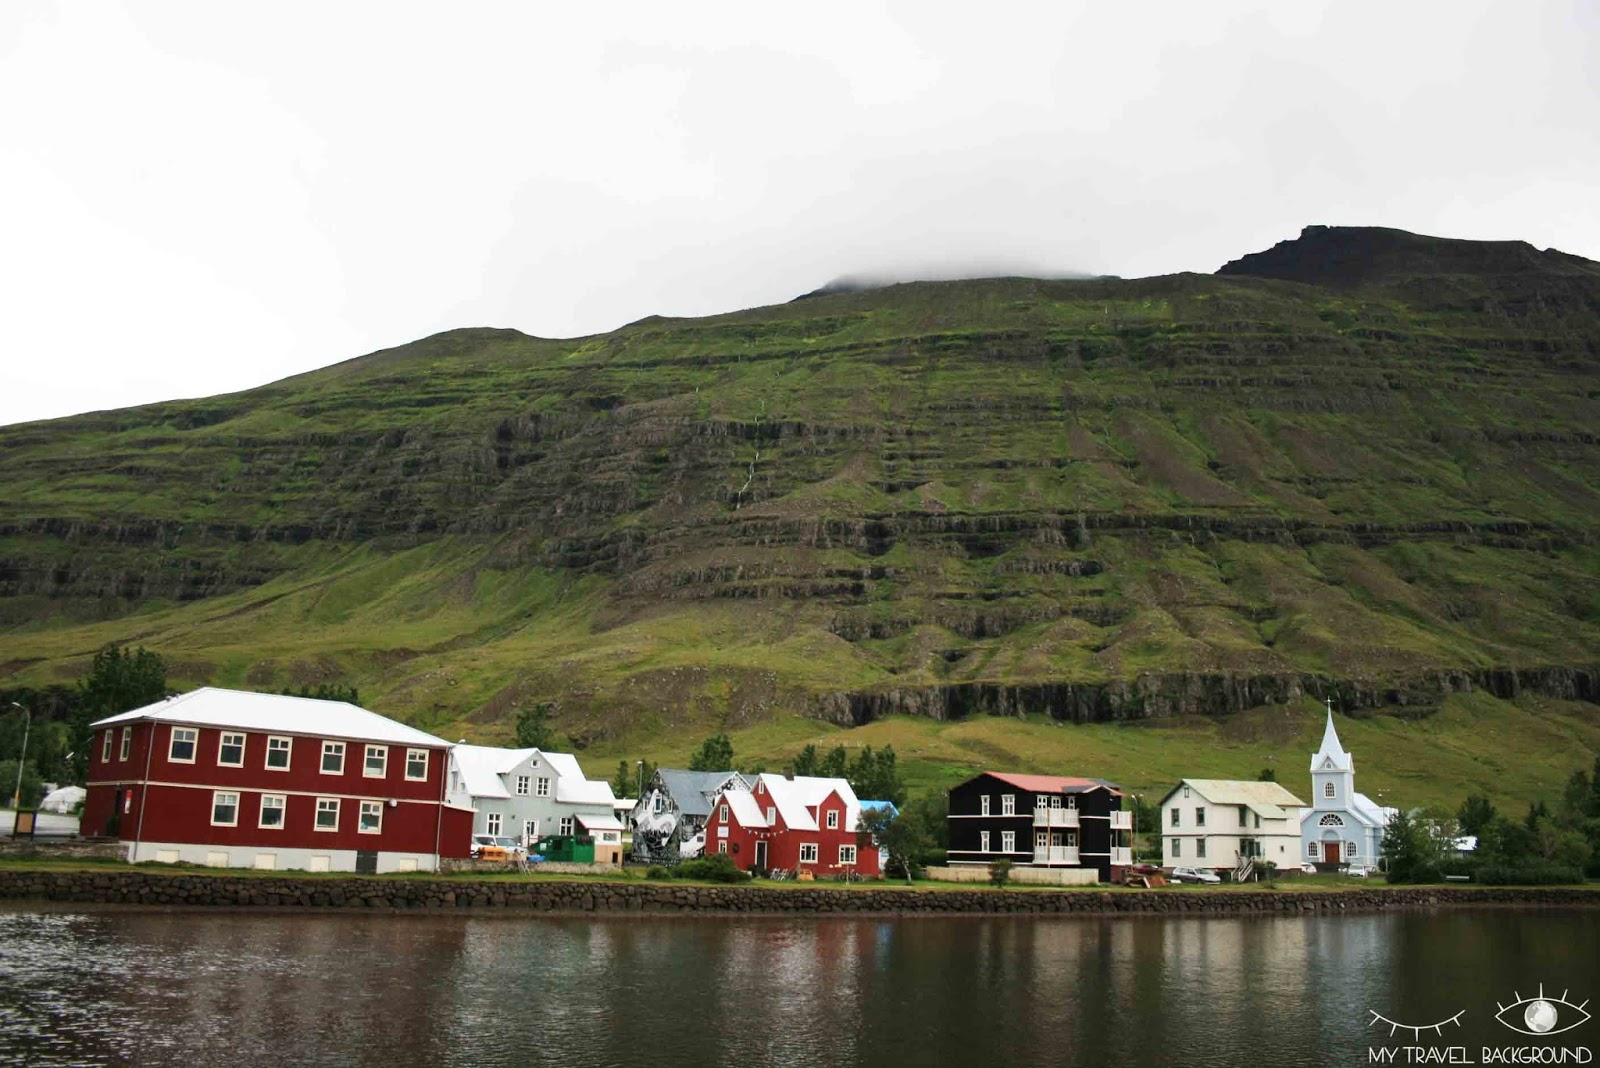 My Travel Background : Islande, en route vers les fjords de l'Est - Seydisfjordur